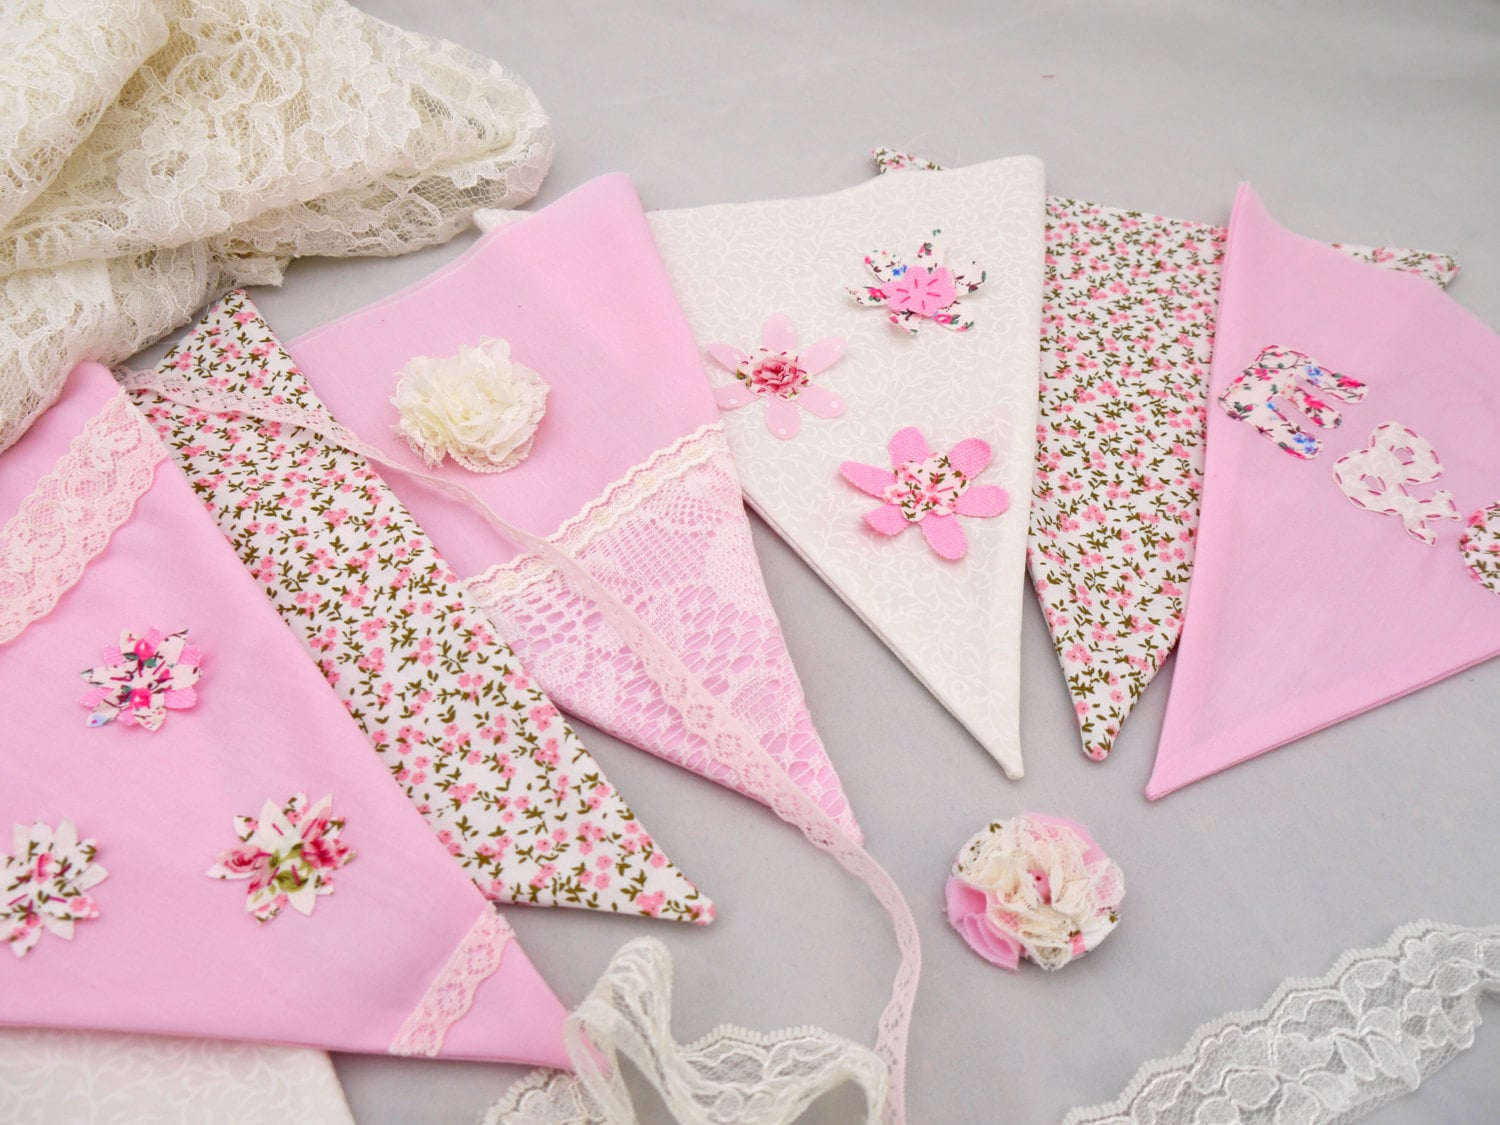 Hen Party Bunting Kit. Make your own personalised wedding